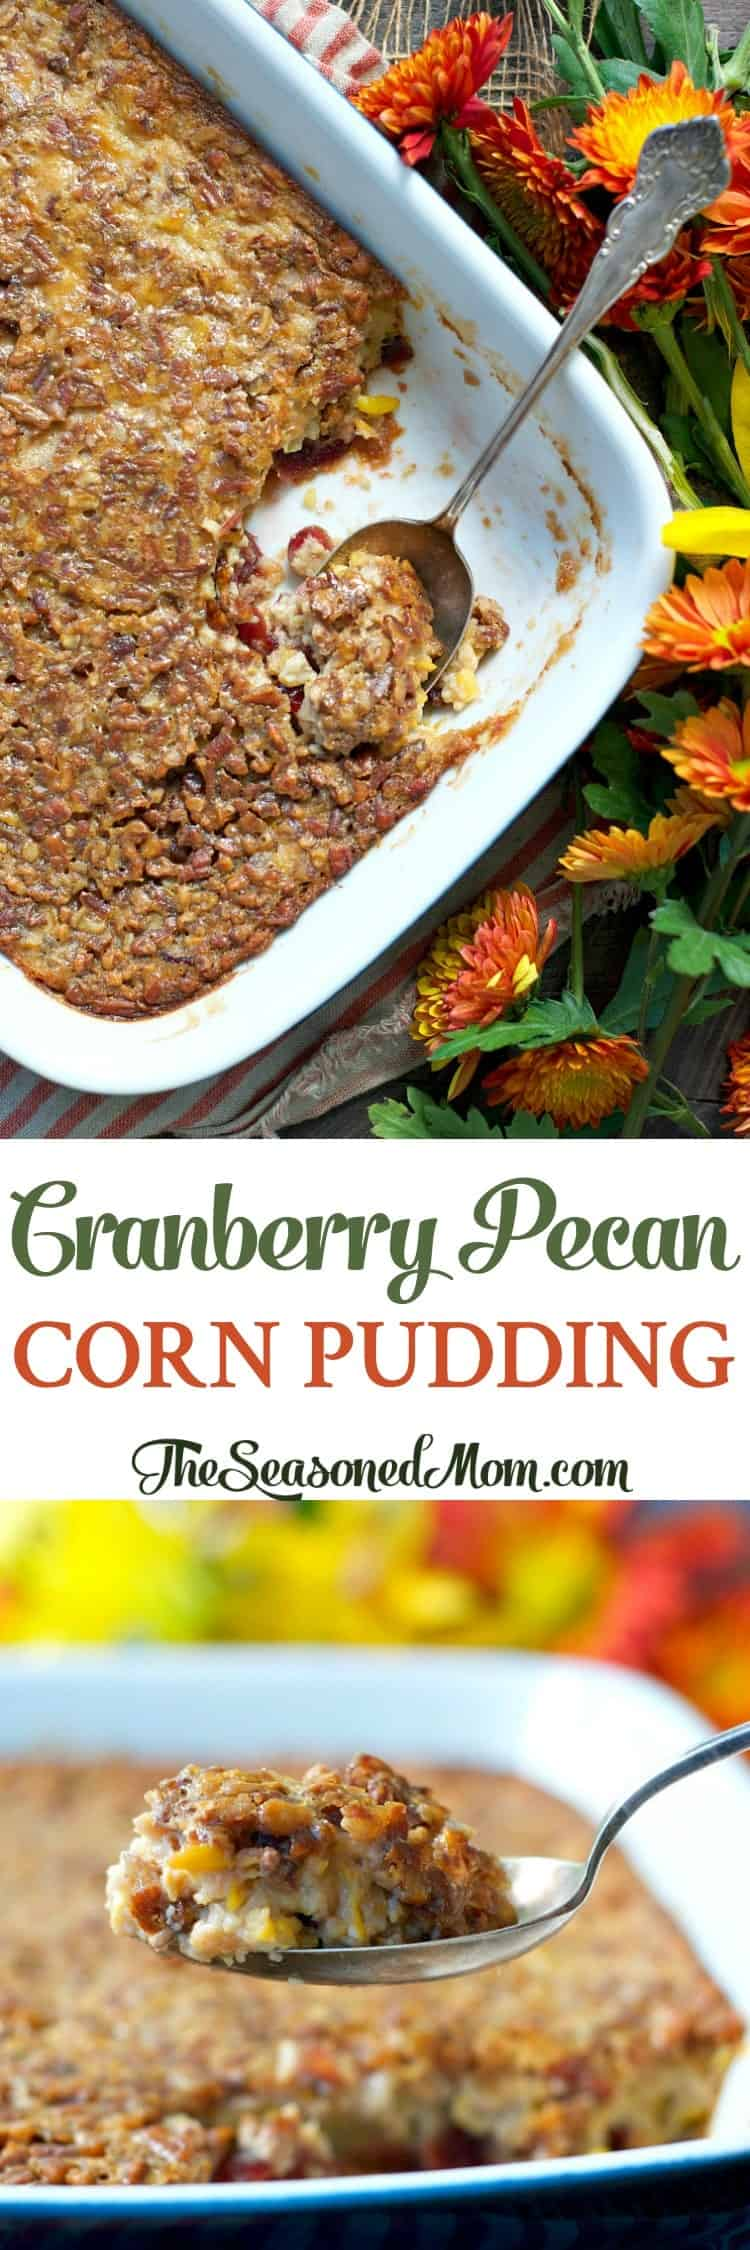 Sweetened with a touch of maple, this Cranberry Pecan Corn Pudding is an easy 10-minute side dish that's perfect for Thanksgiving, Christmas, or any weeknight dinner!